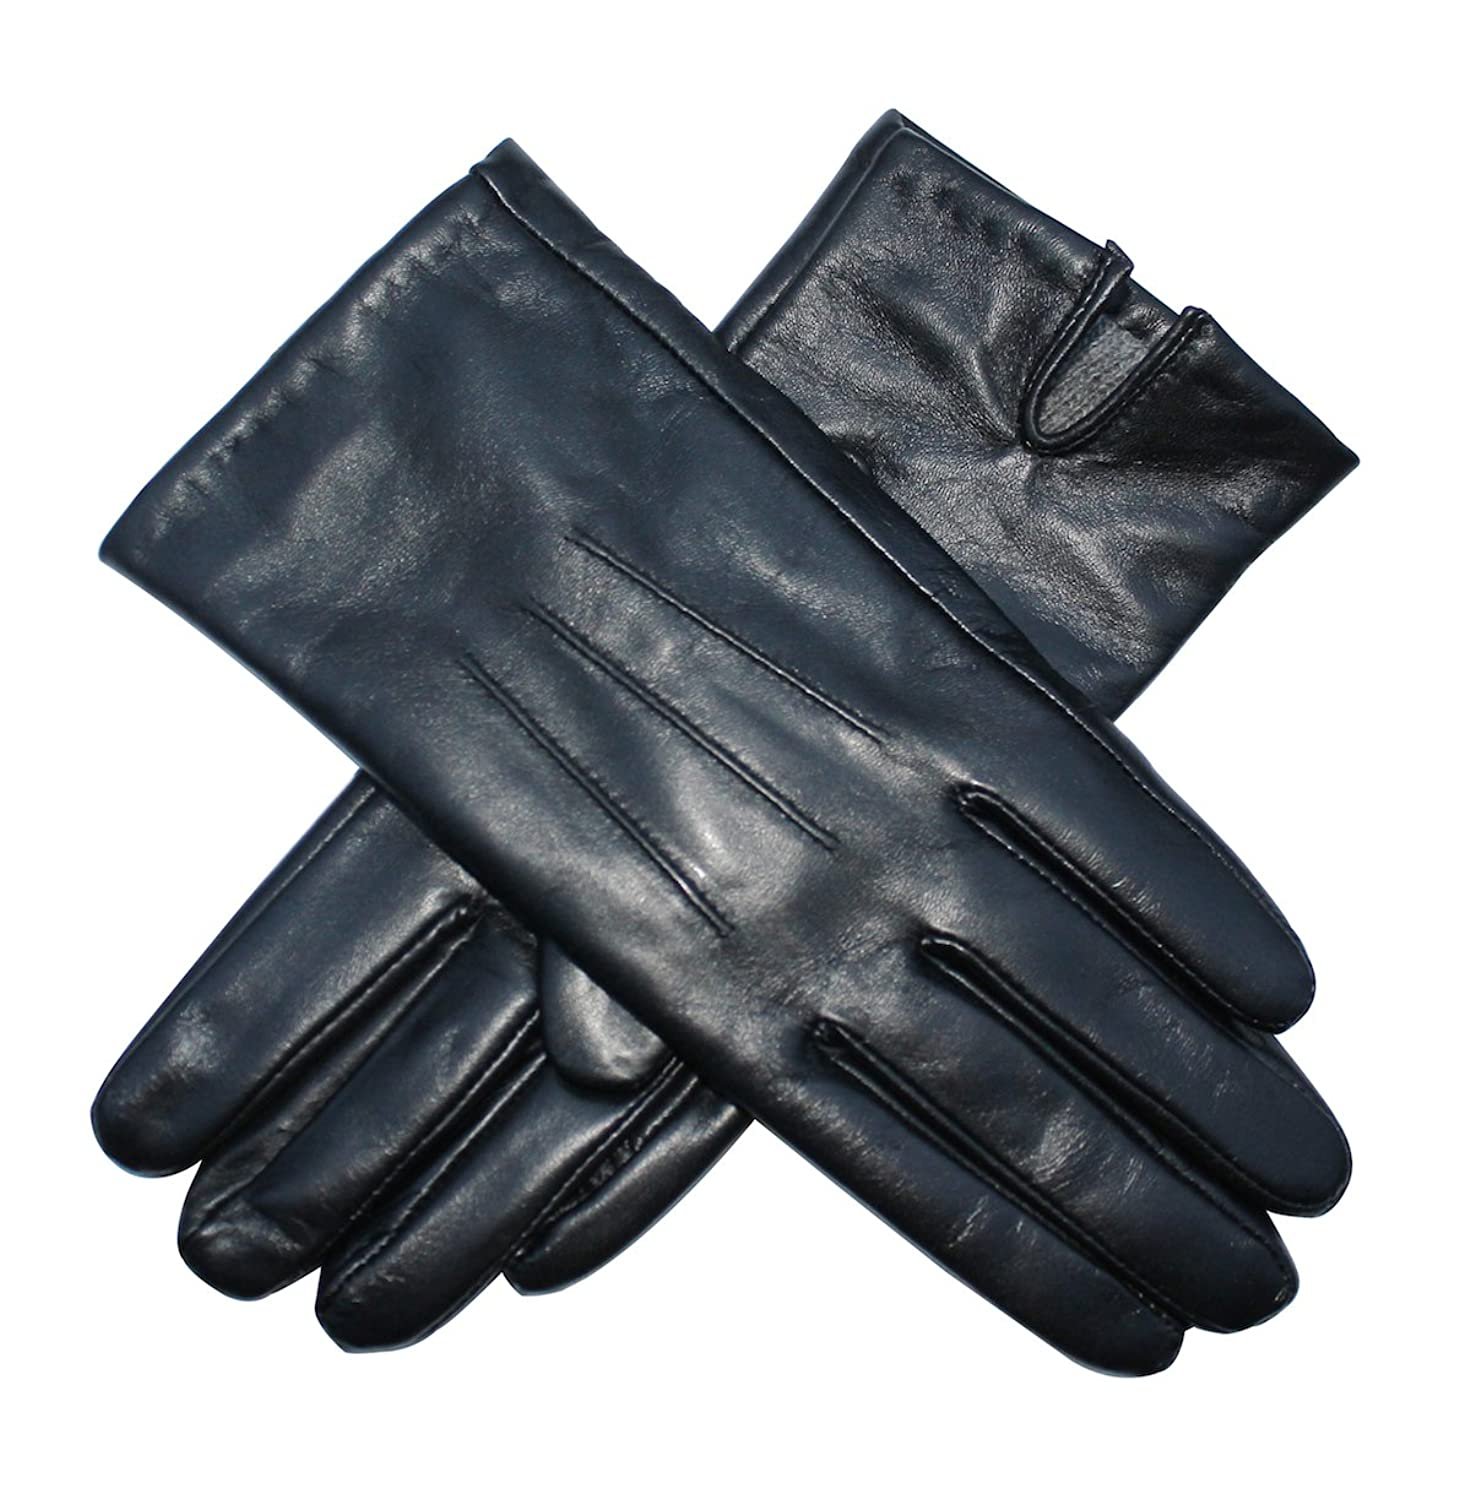 John lewis ladies black leather gloves - Jasmine Silk Ladies Luxury Genuine Lambskin Leather Cashmere Lined Gloves Black